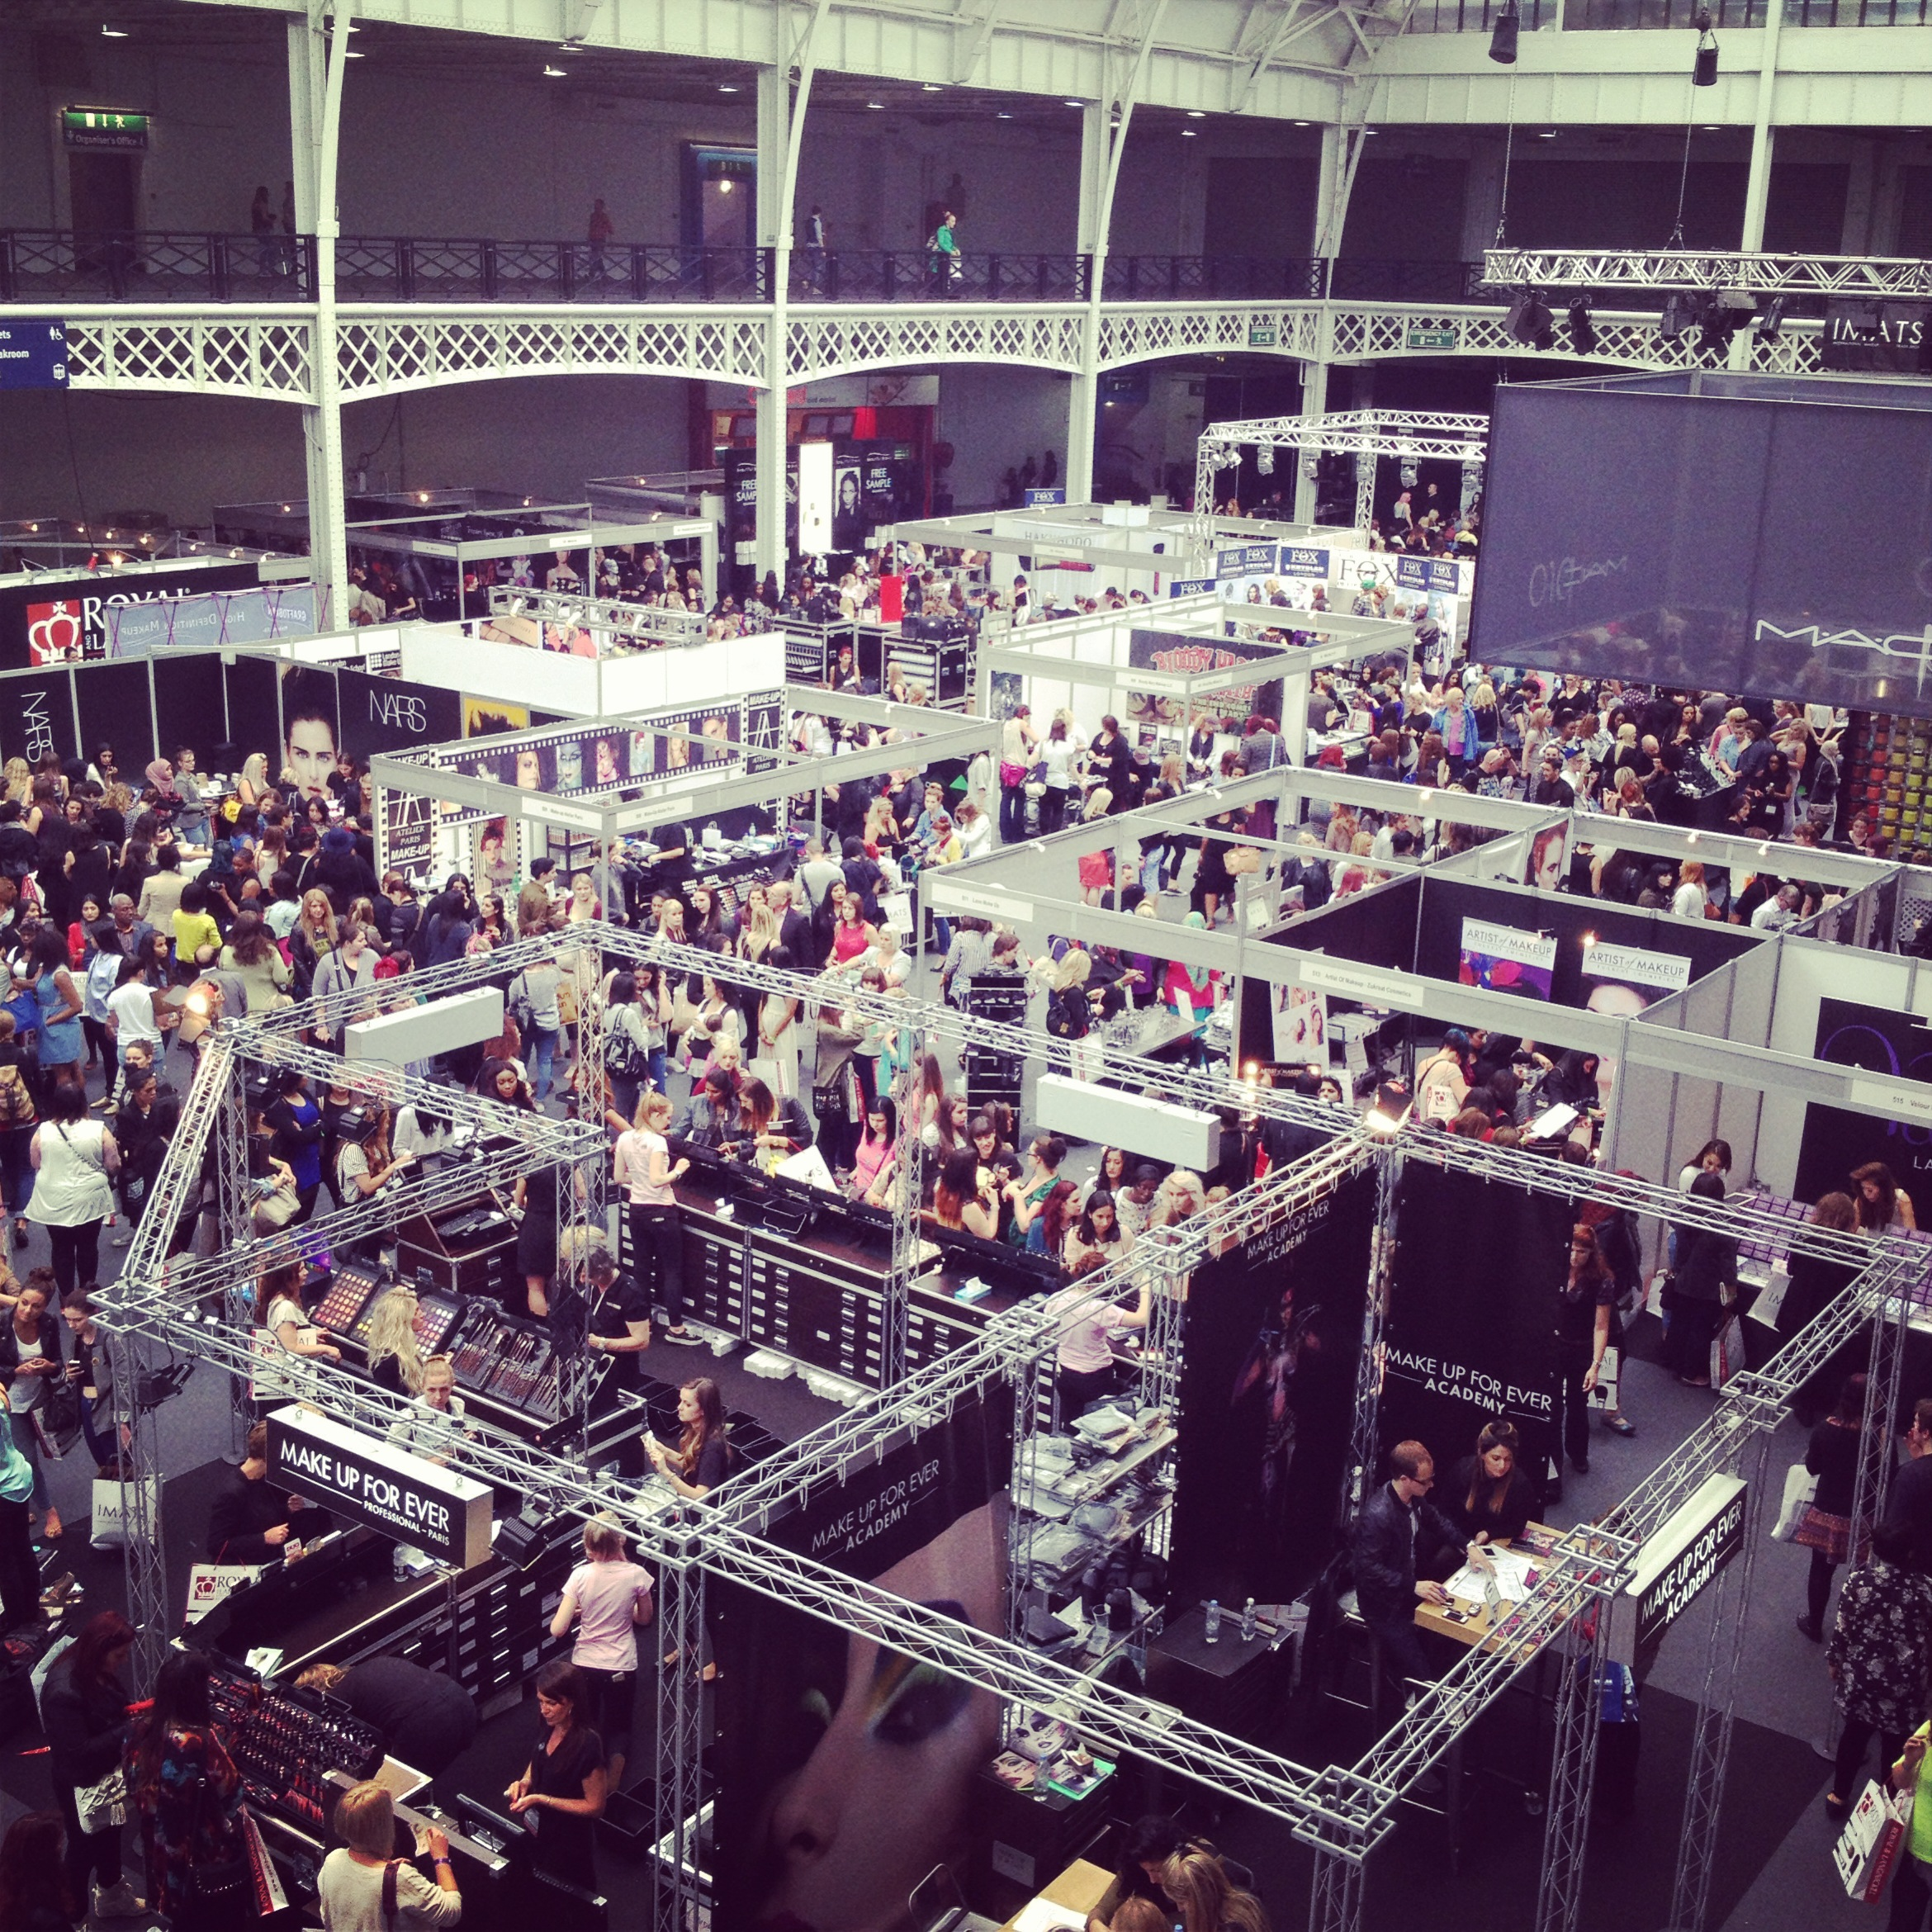 The crowd at IMATS London 2013